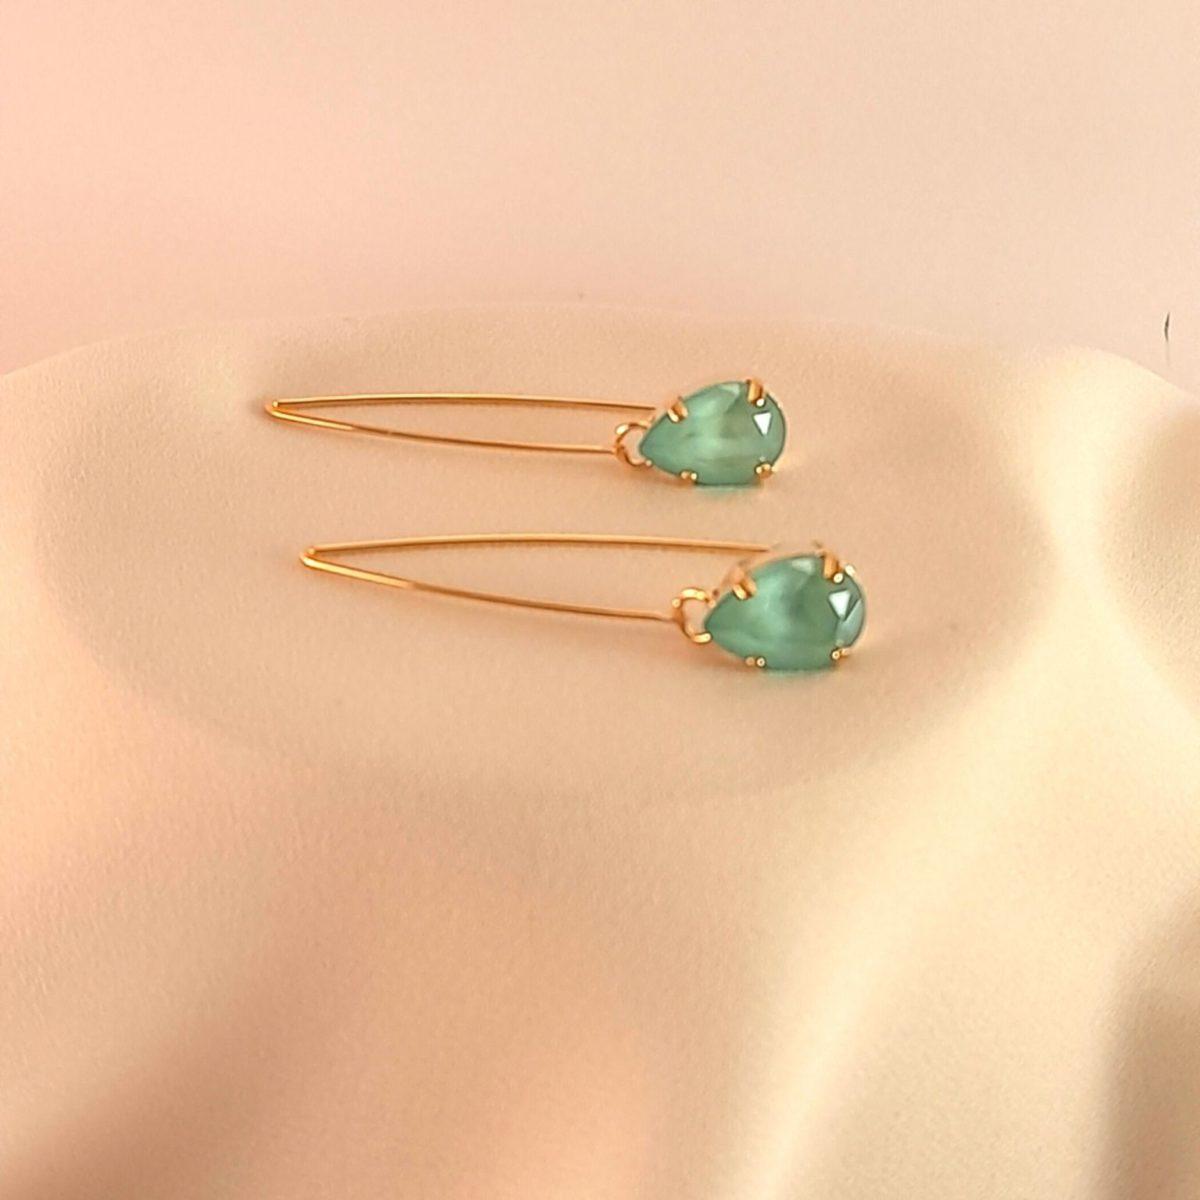 Long Earrings With A Green Stone